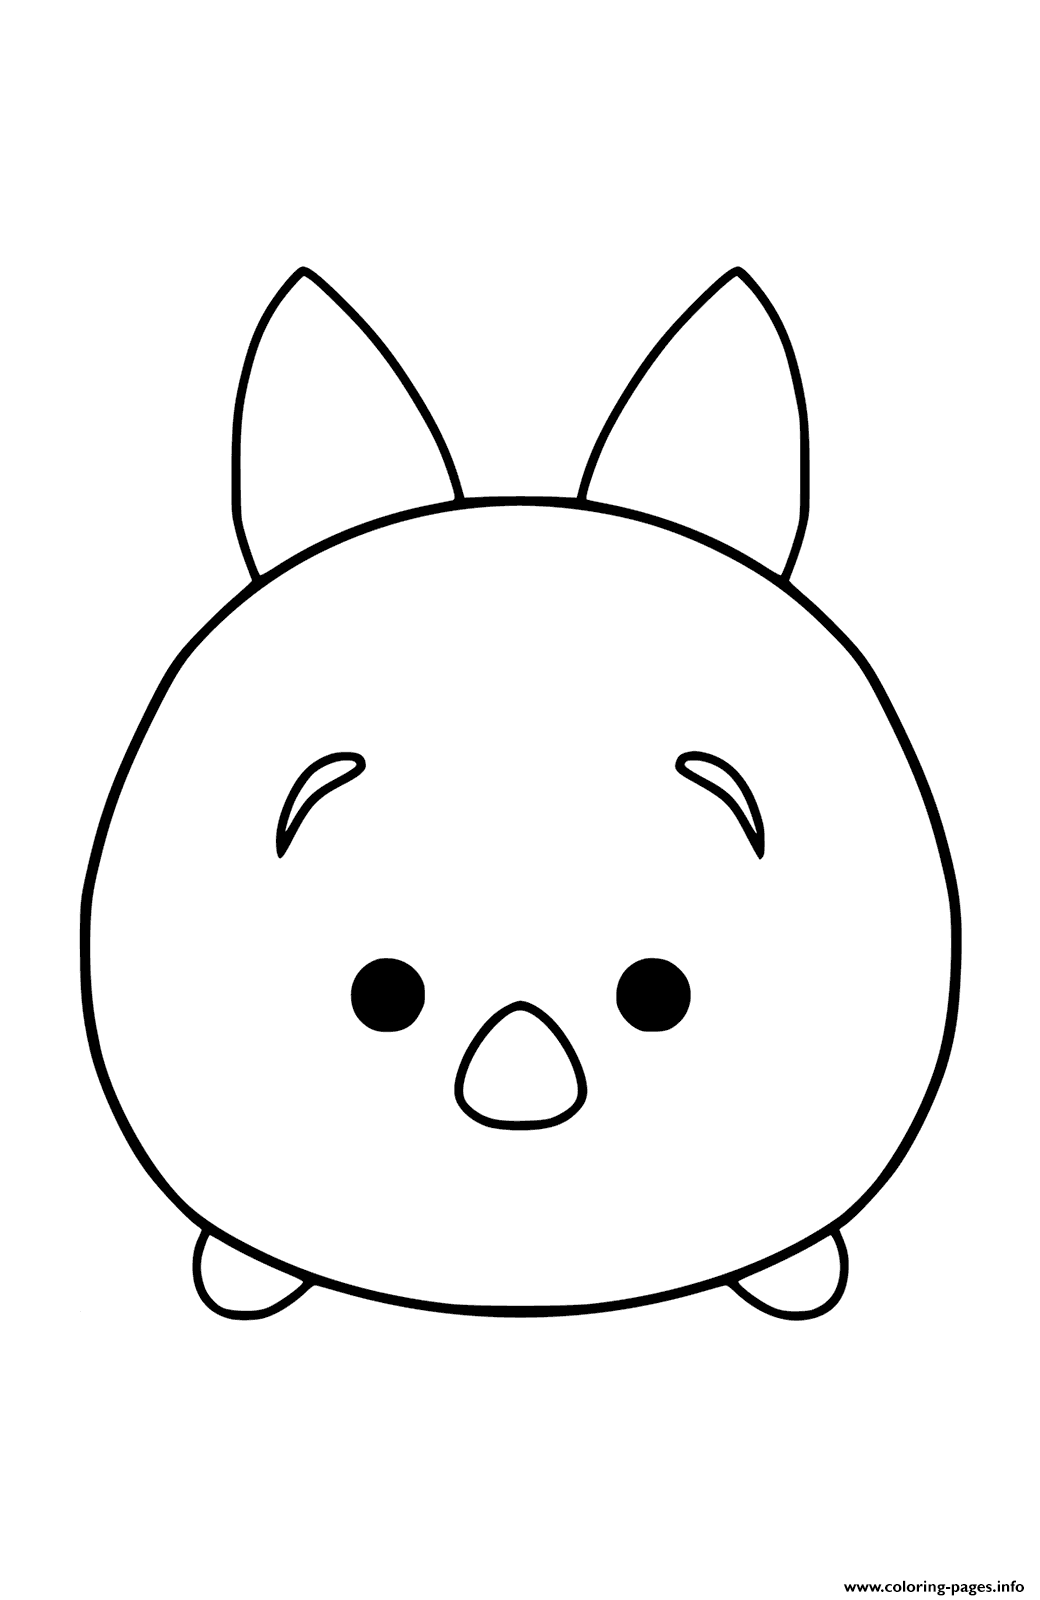 Disney Tsum Tsum Plush Toy Piglet To Color Coloring Pages Printable